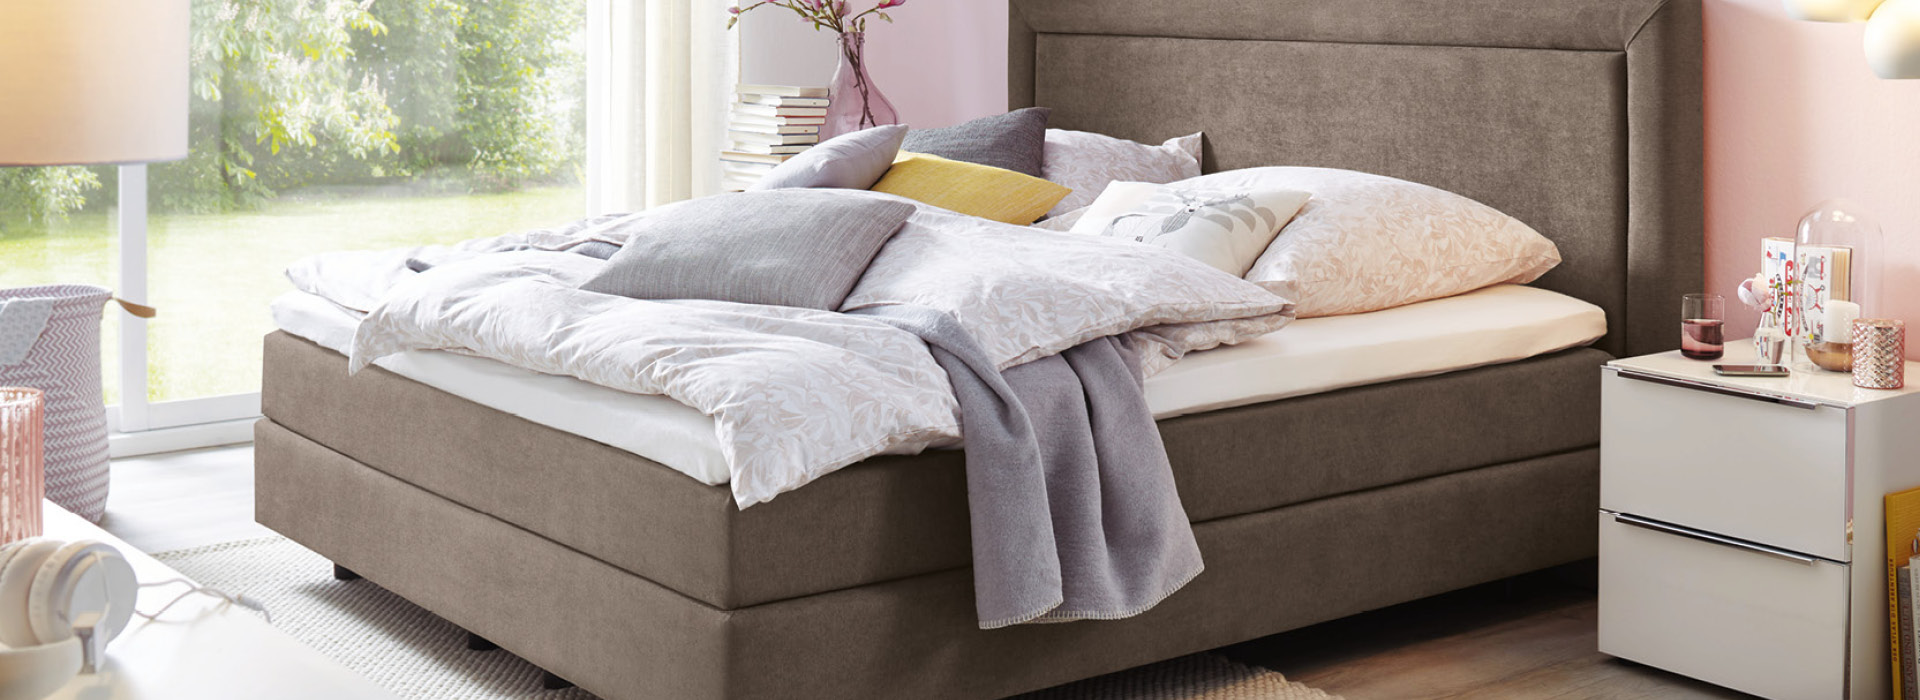 Global Family Boxspringbett Leder